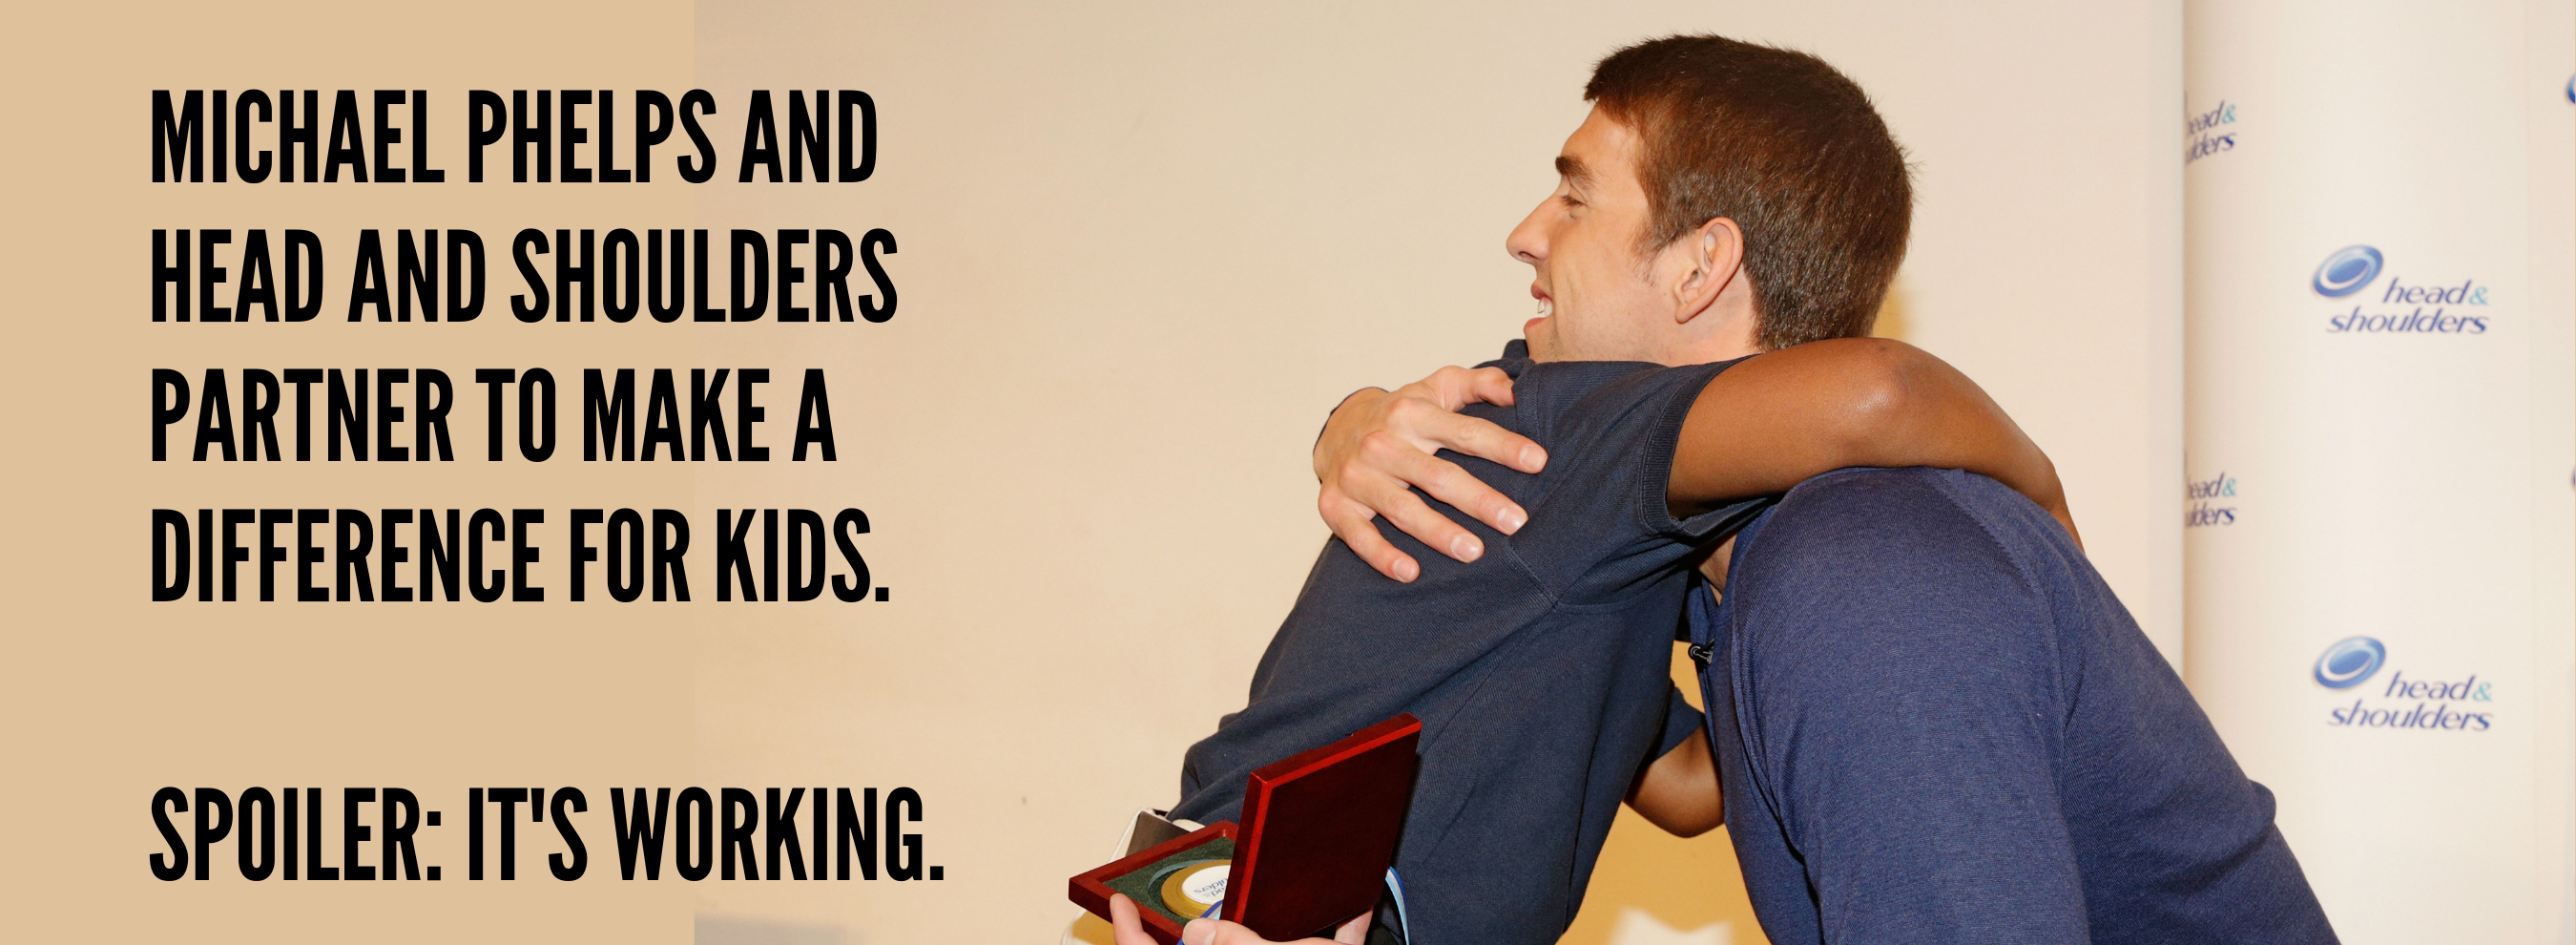 Michael Phelps showing love